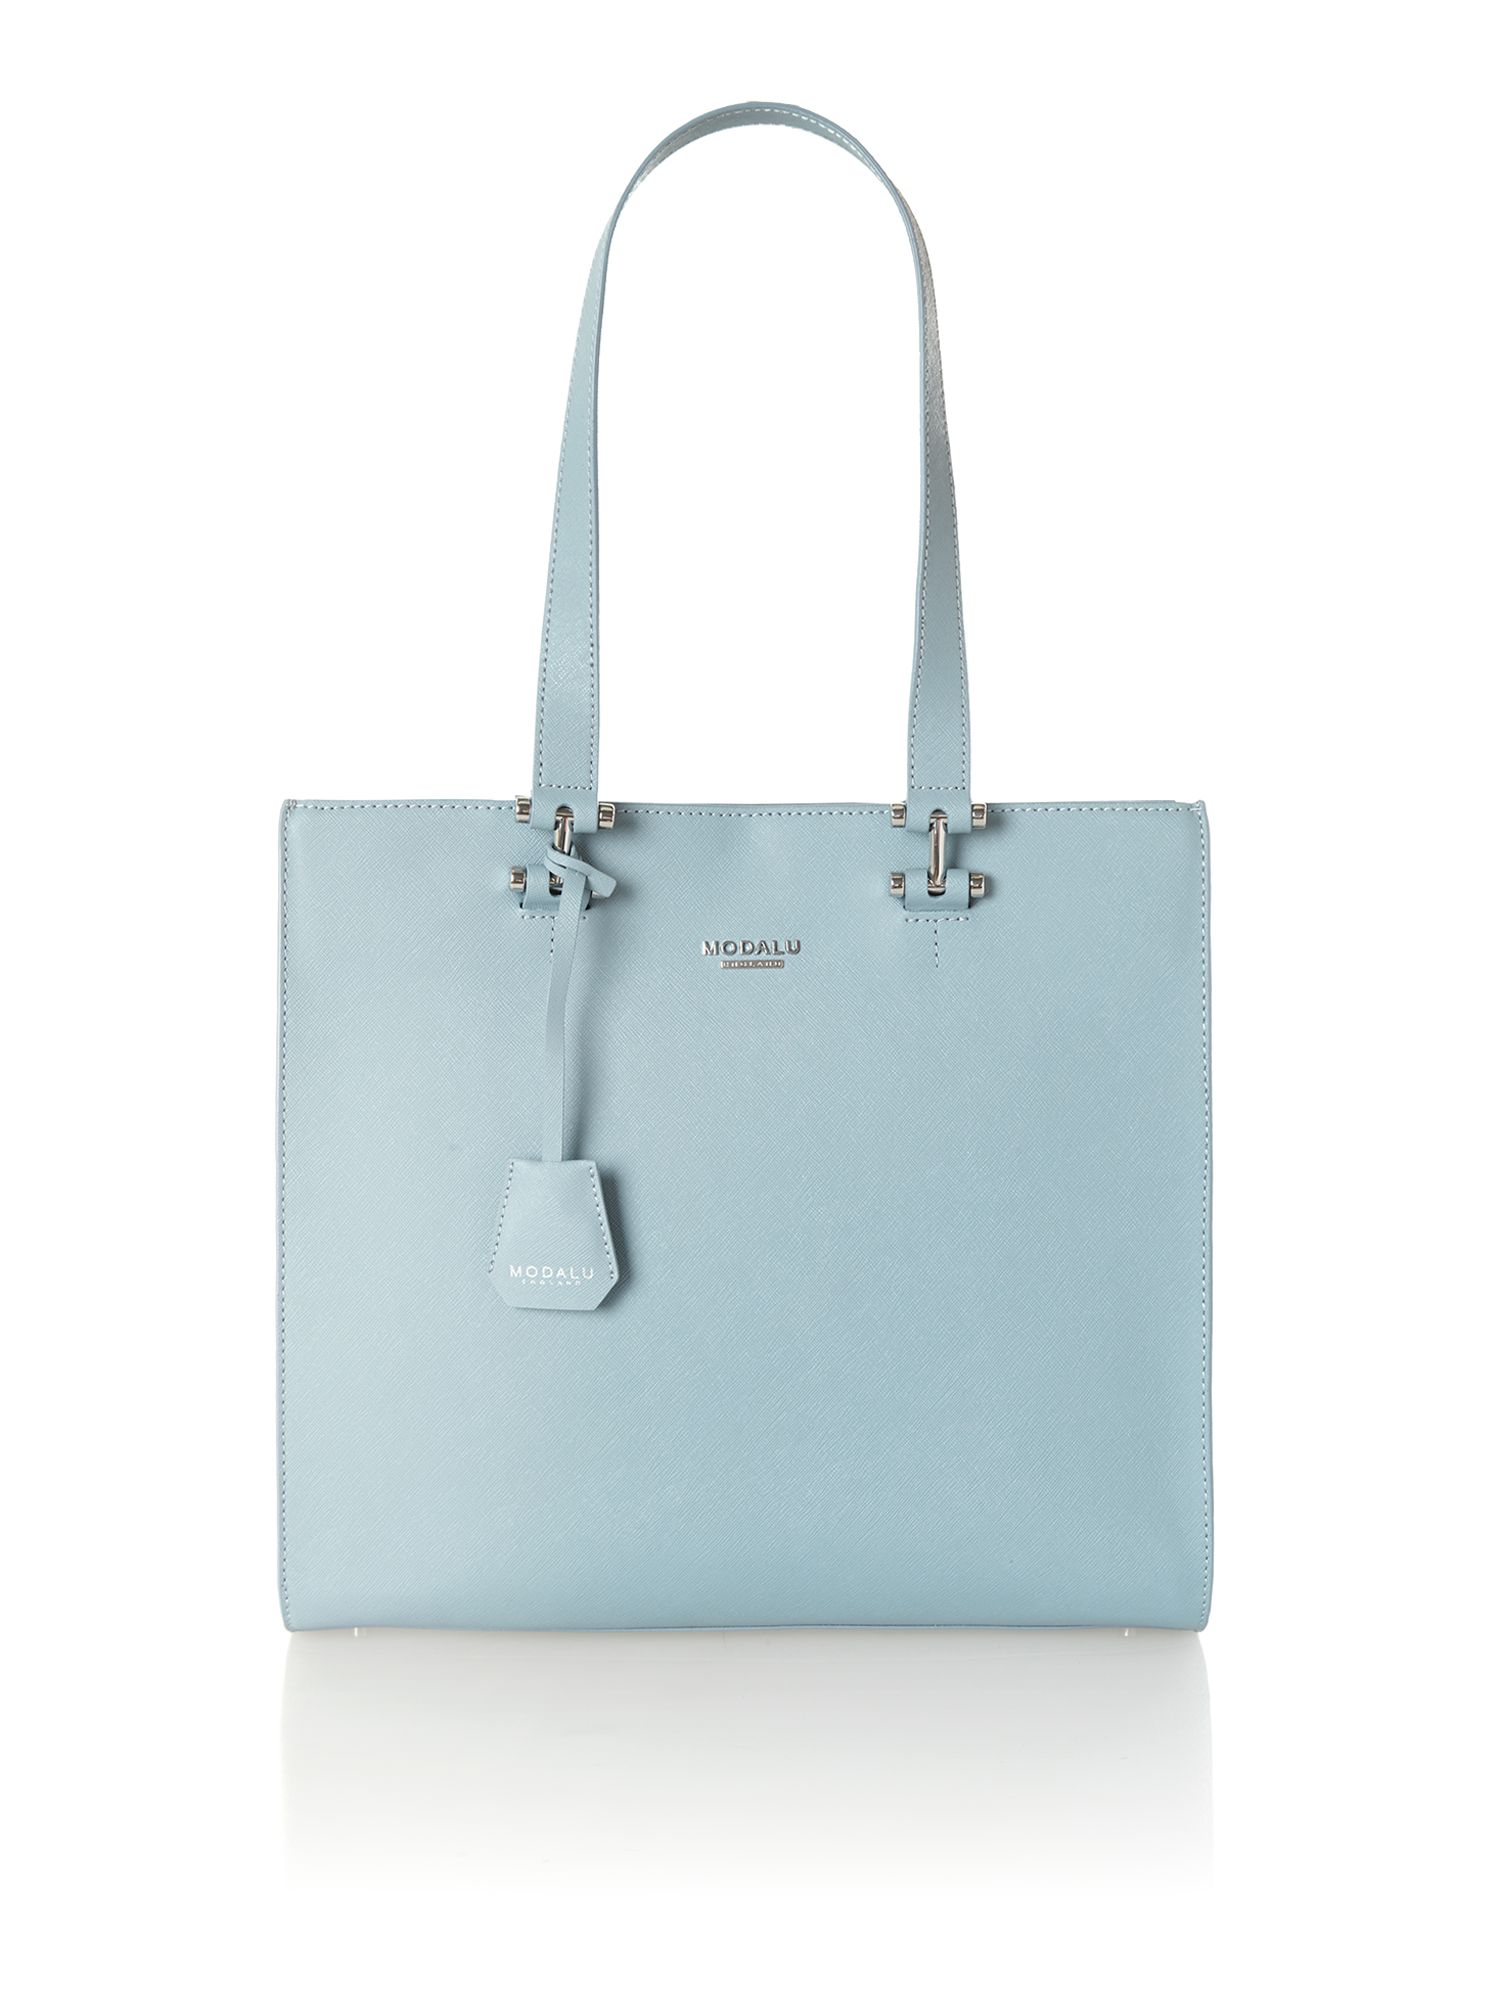 Cara blue tote bag